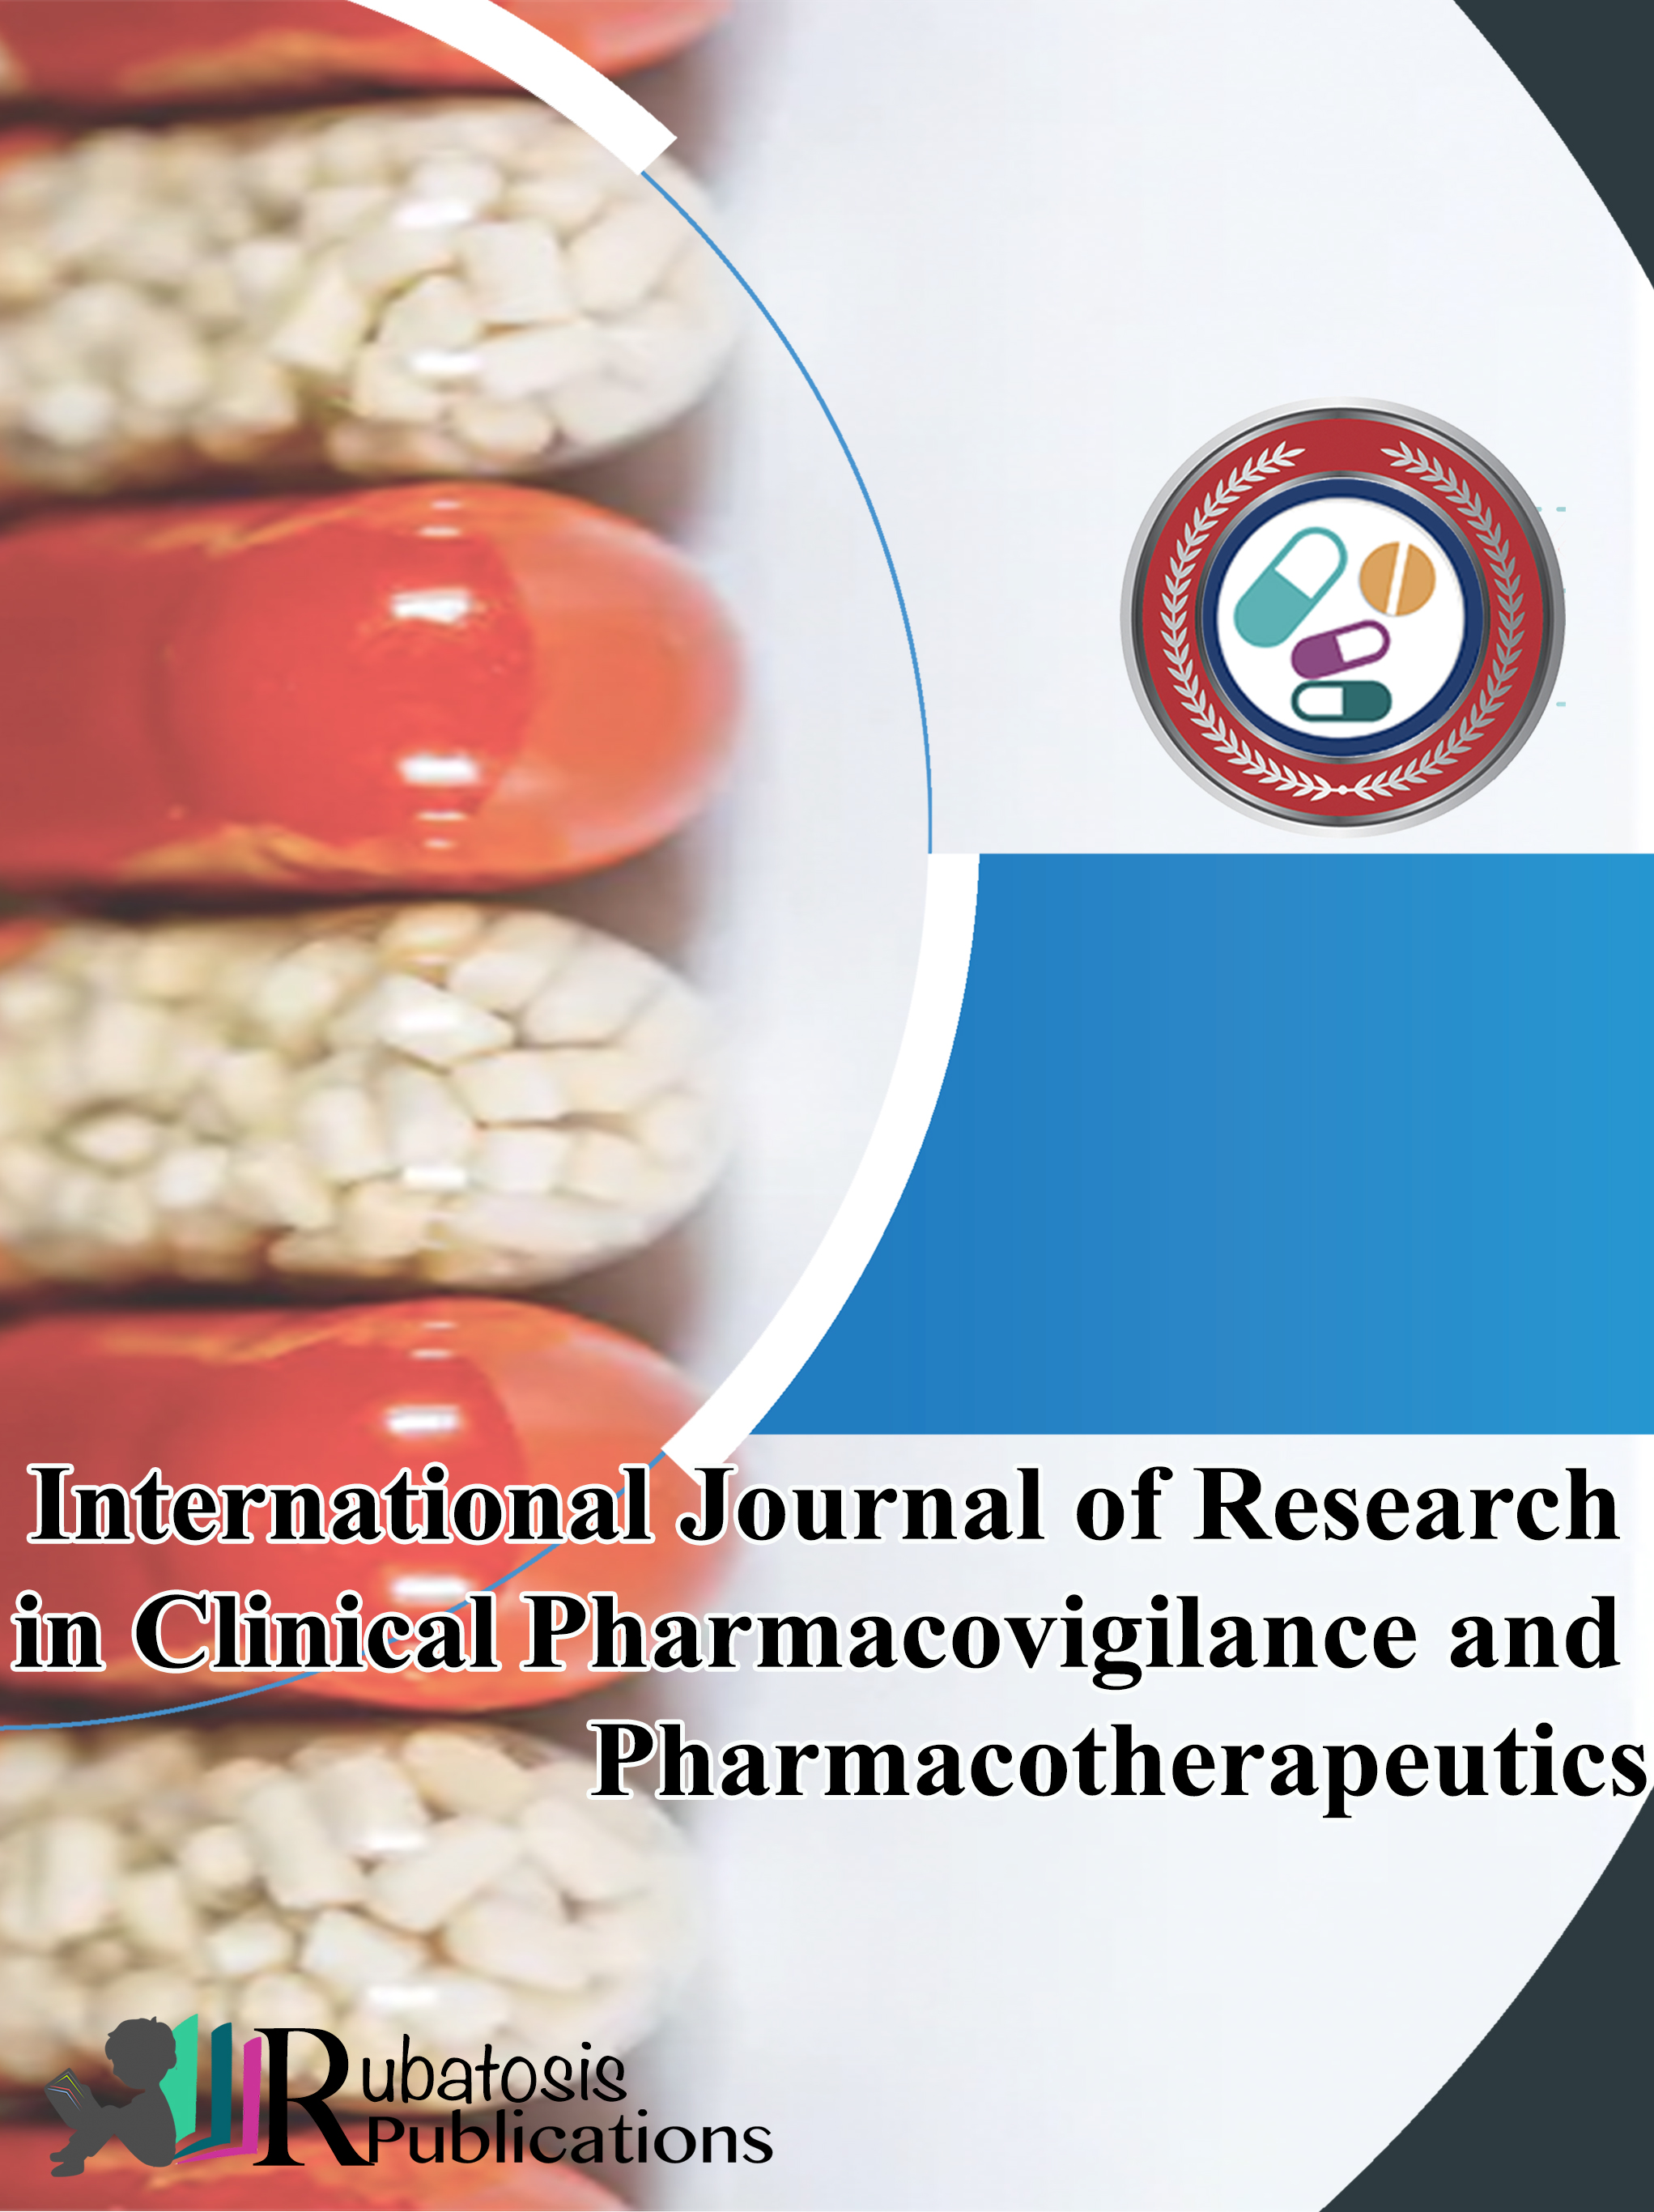 International Journal of Research In Pharmacovigilance and Pharmacotherapeutics